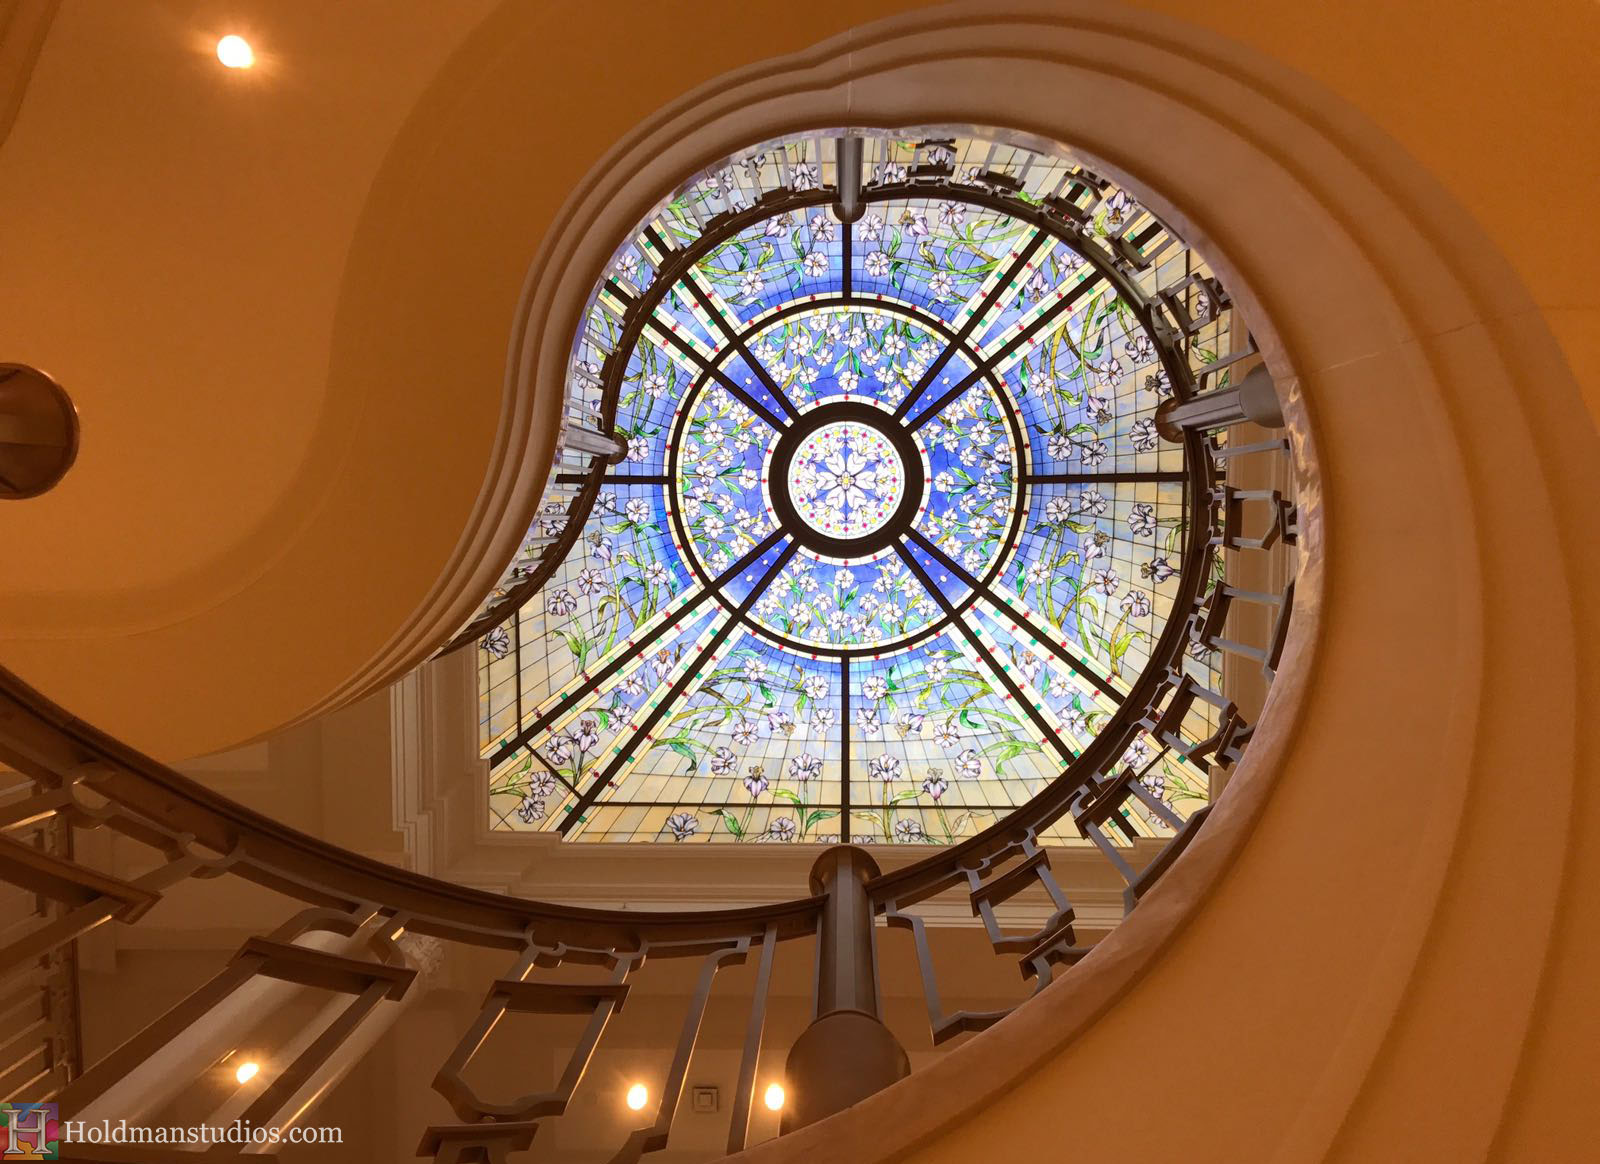 Holdman-Studios-Stained-Glass-Paris-LDS-Temple-Martagon-Lily-Flowers-Leaves-Sun-Moon-Stars-Round-Rose-Grand-Staircase-Skylight-Window.jpg